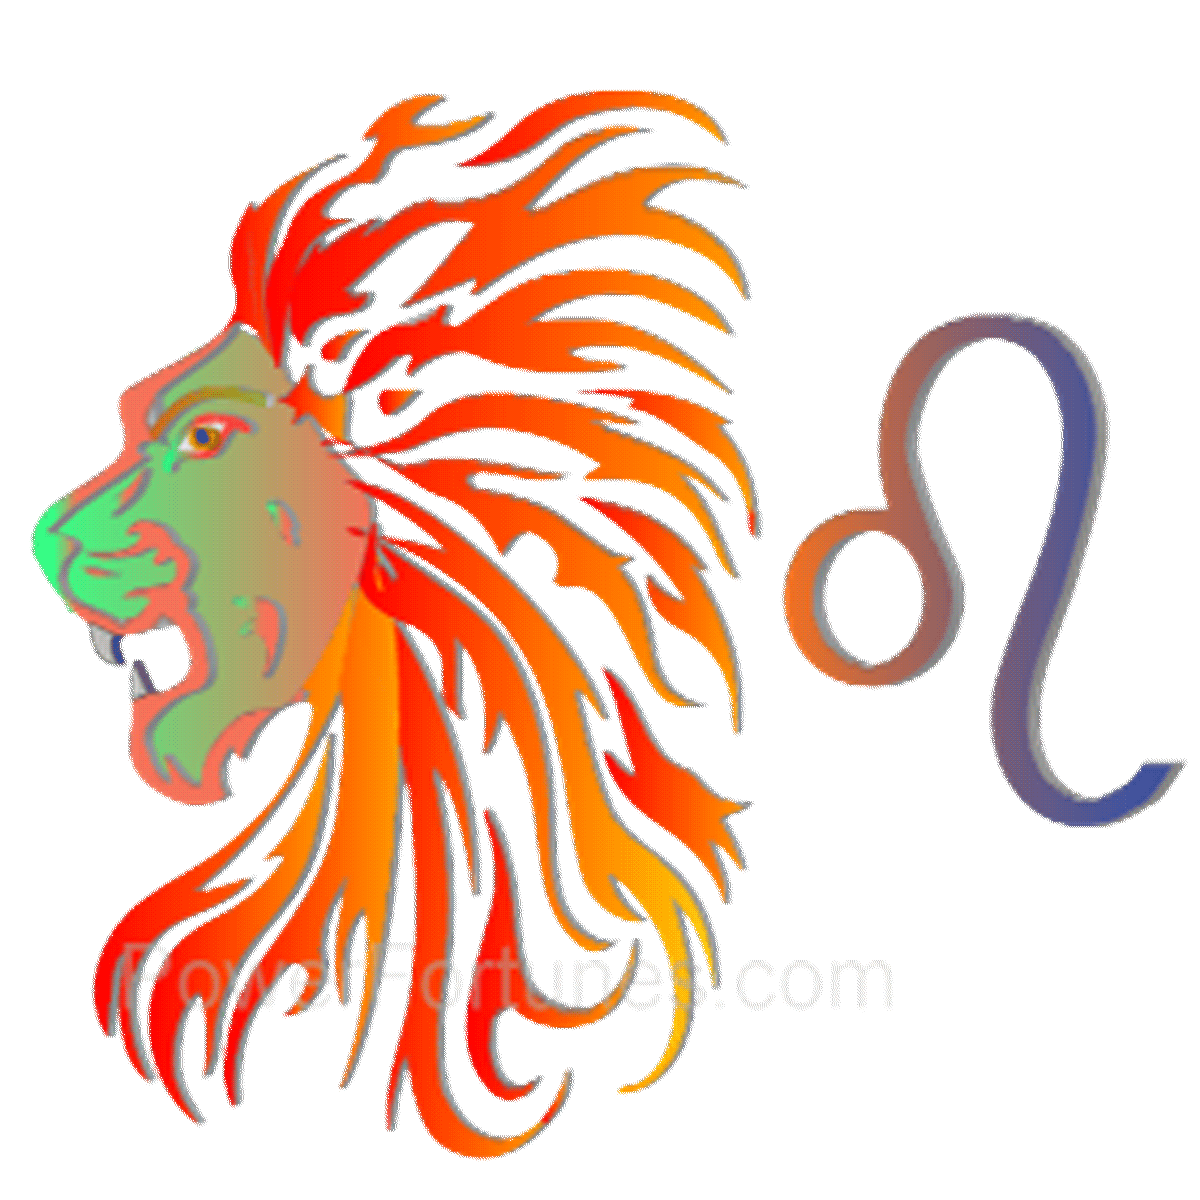 Monthly horoscopes for Leo, from 1st March to 31st March